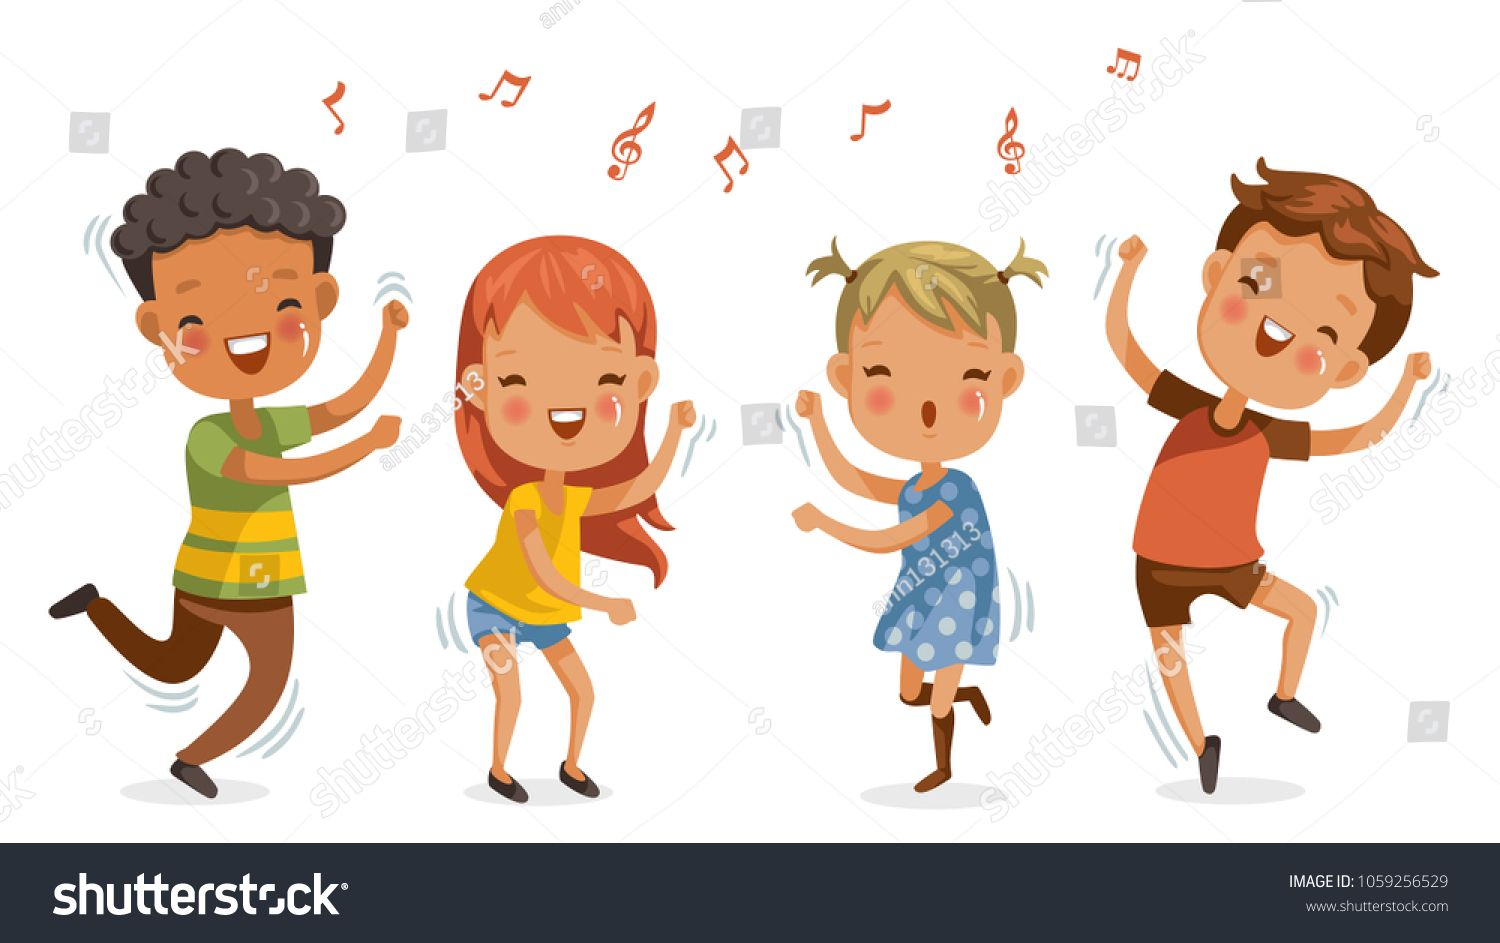 Children Dancing Boys And Girls Dancing Together Happily Jumping Shake The Hips Move The Body Cute Cartoon Enjoy The Rhyt Kids Dance Nurse Art Girl Dancing